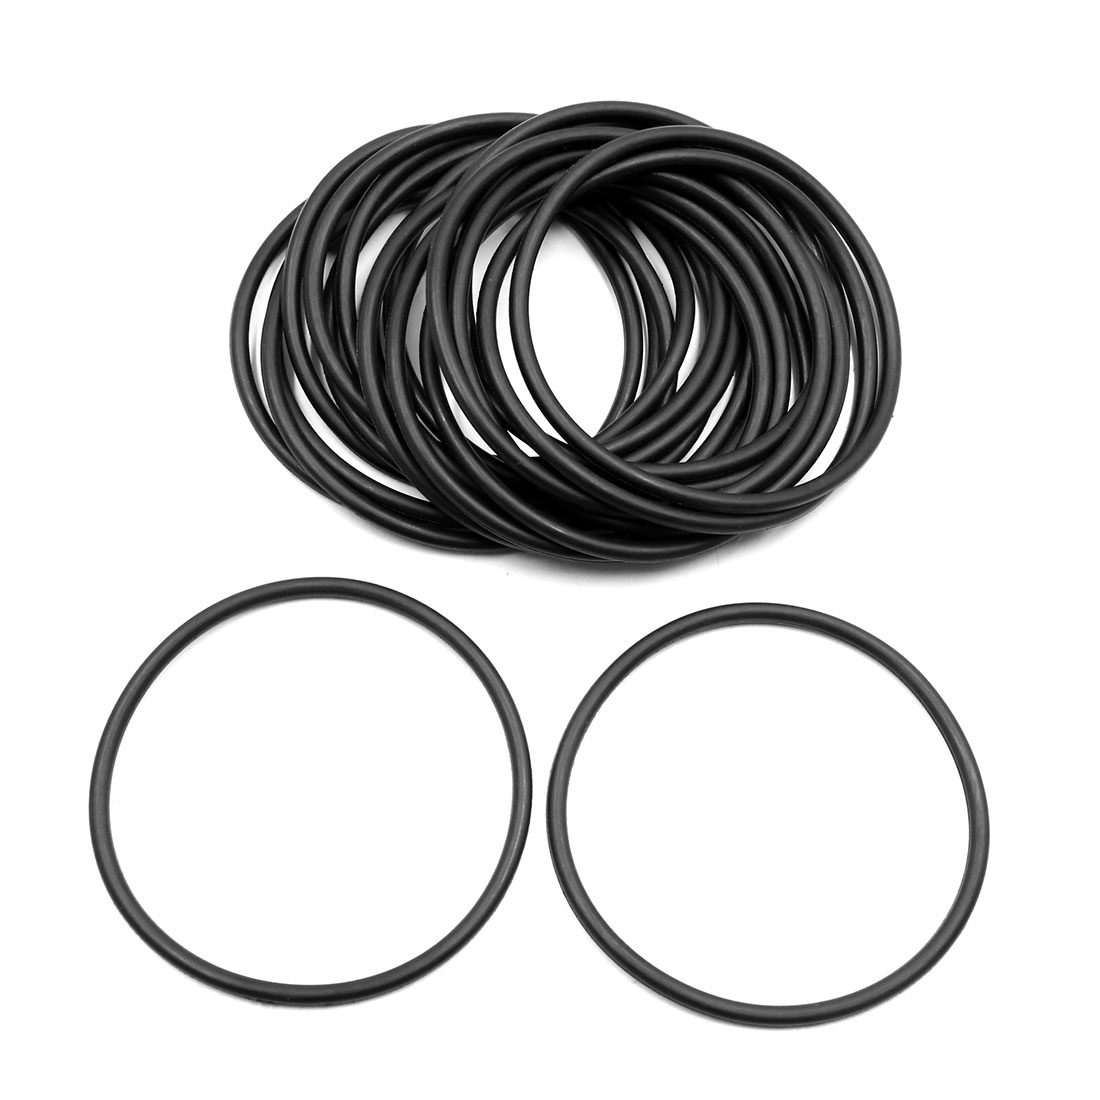 20pcs Black Universal Nitrile Rubber O-Ring Seals Gasket for Car 69 x 3.55mm